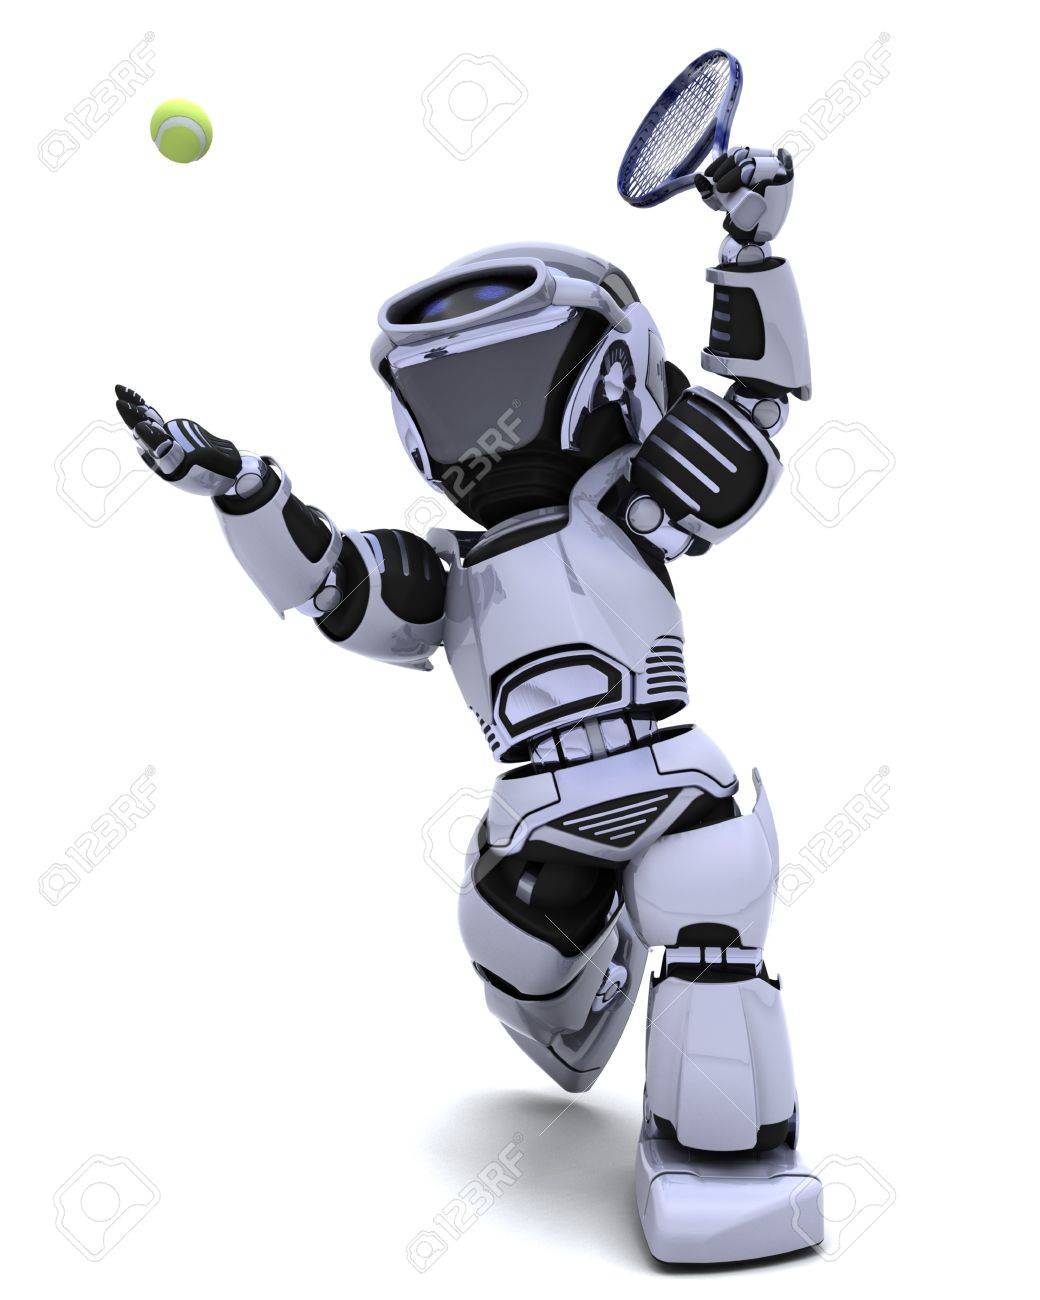 3D render of a Robot playing tennis Stock Photo - 8614031